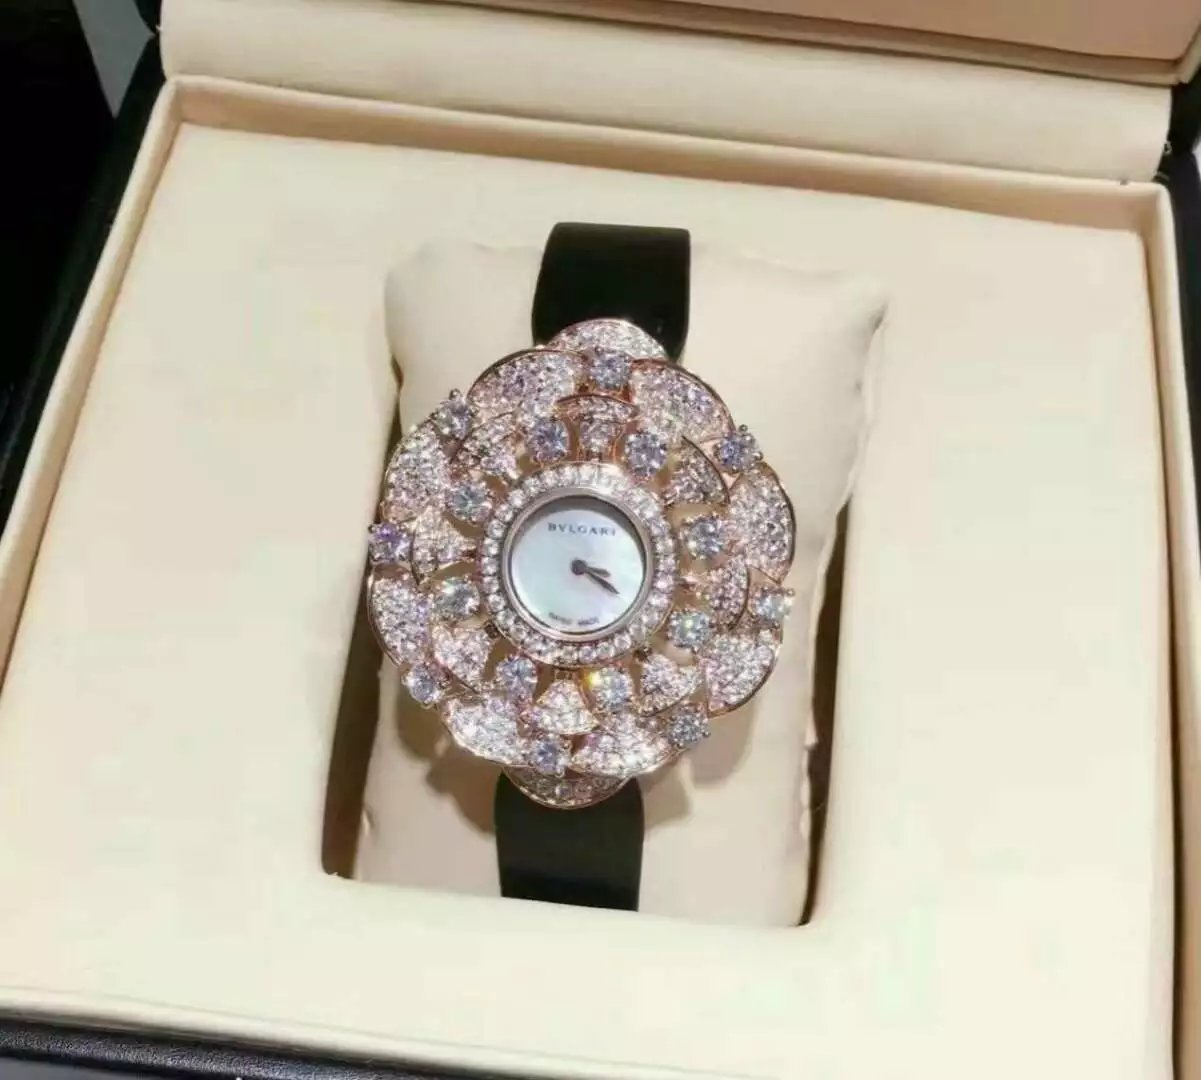 Bvlgari Watch 176